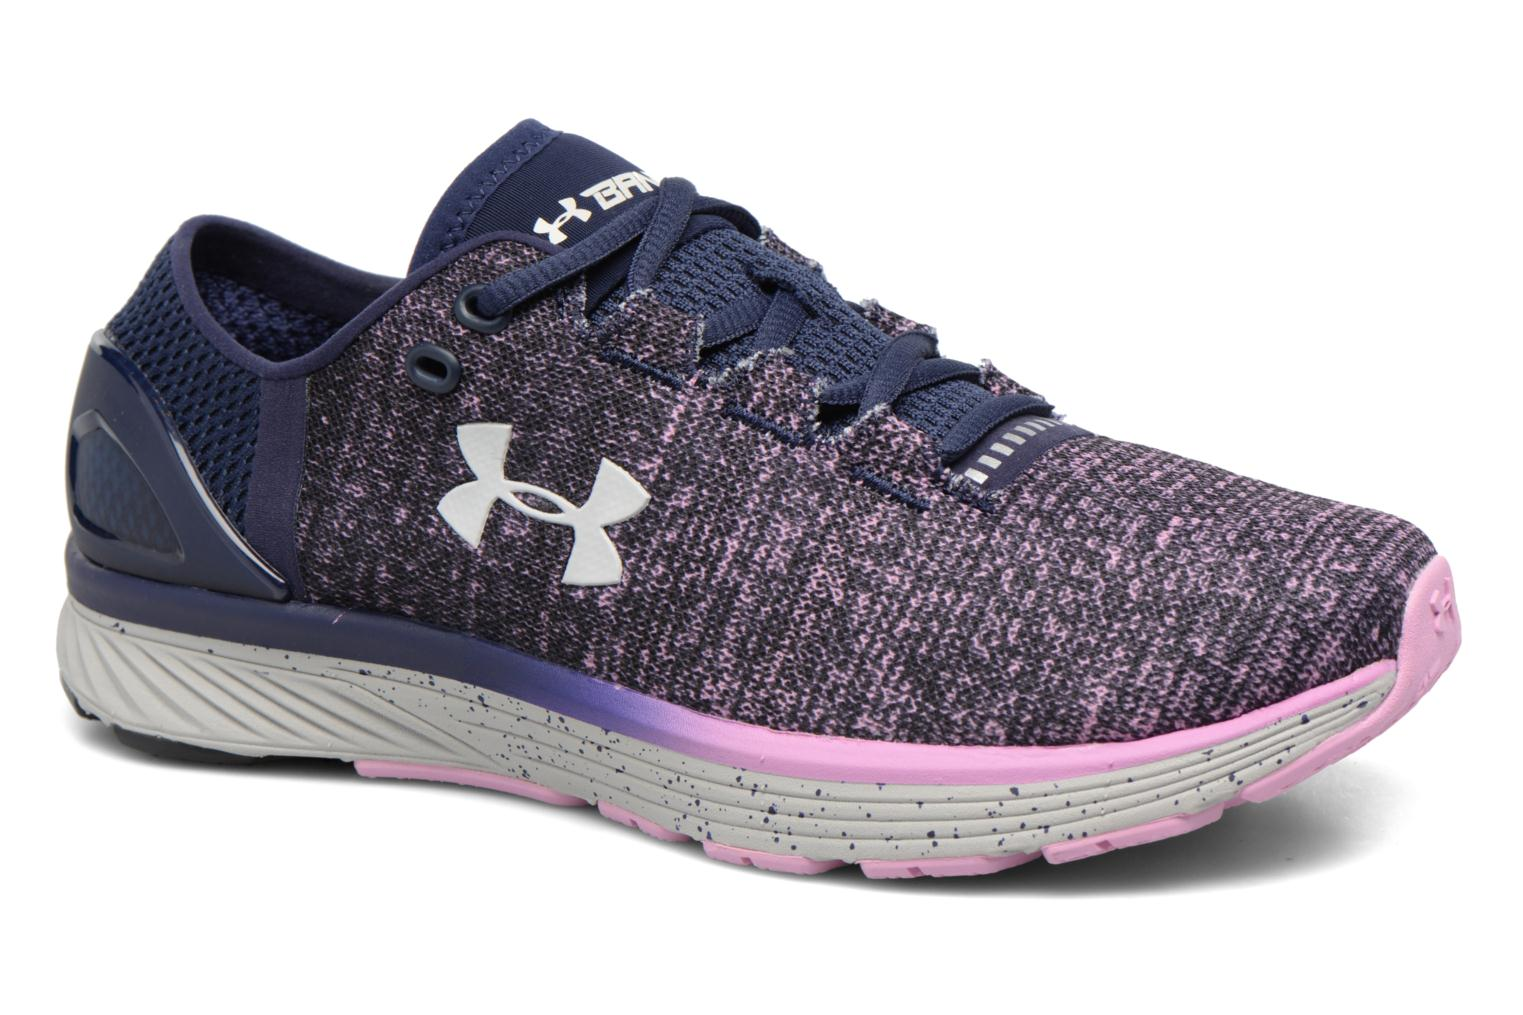 Under Armour W Charged Bandit 3